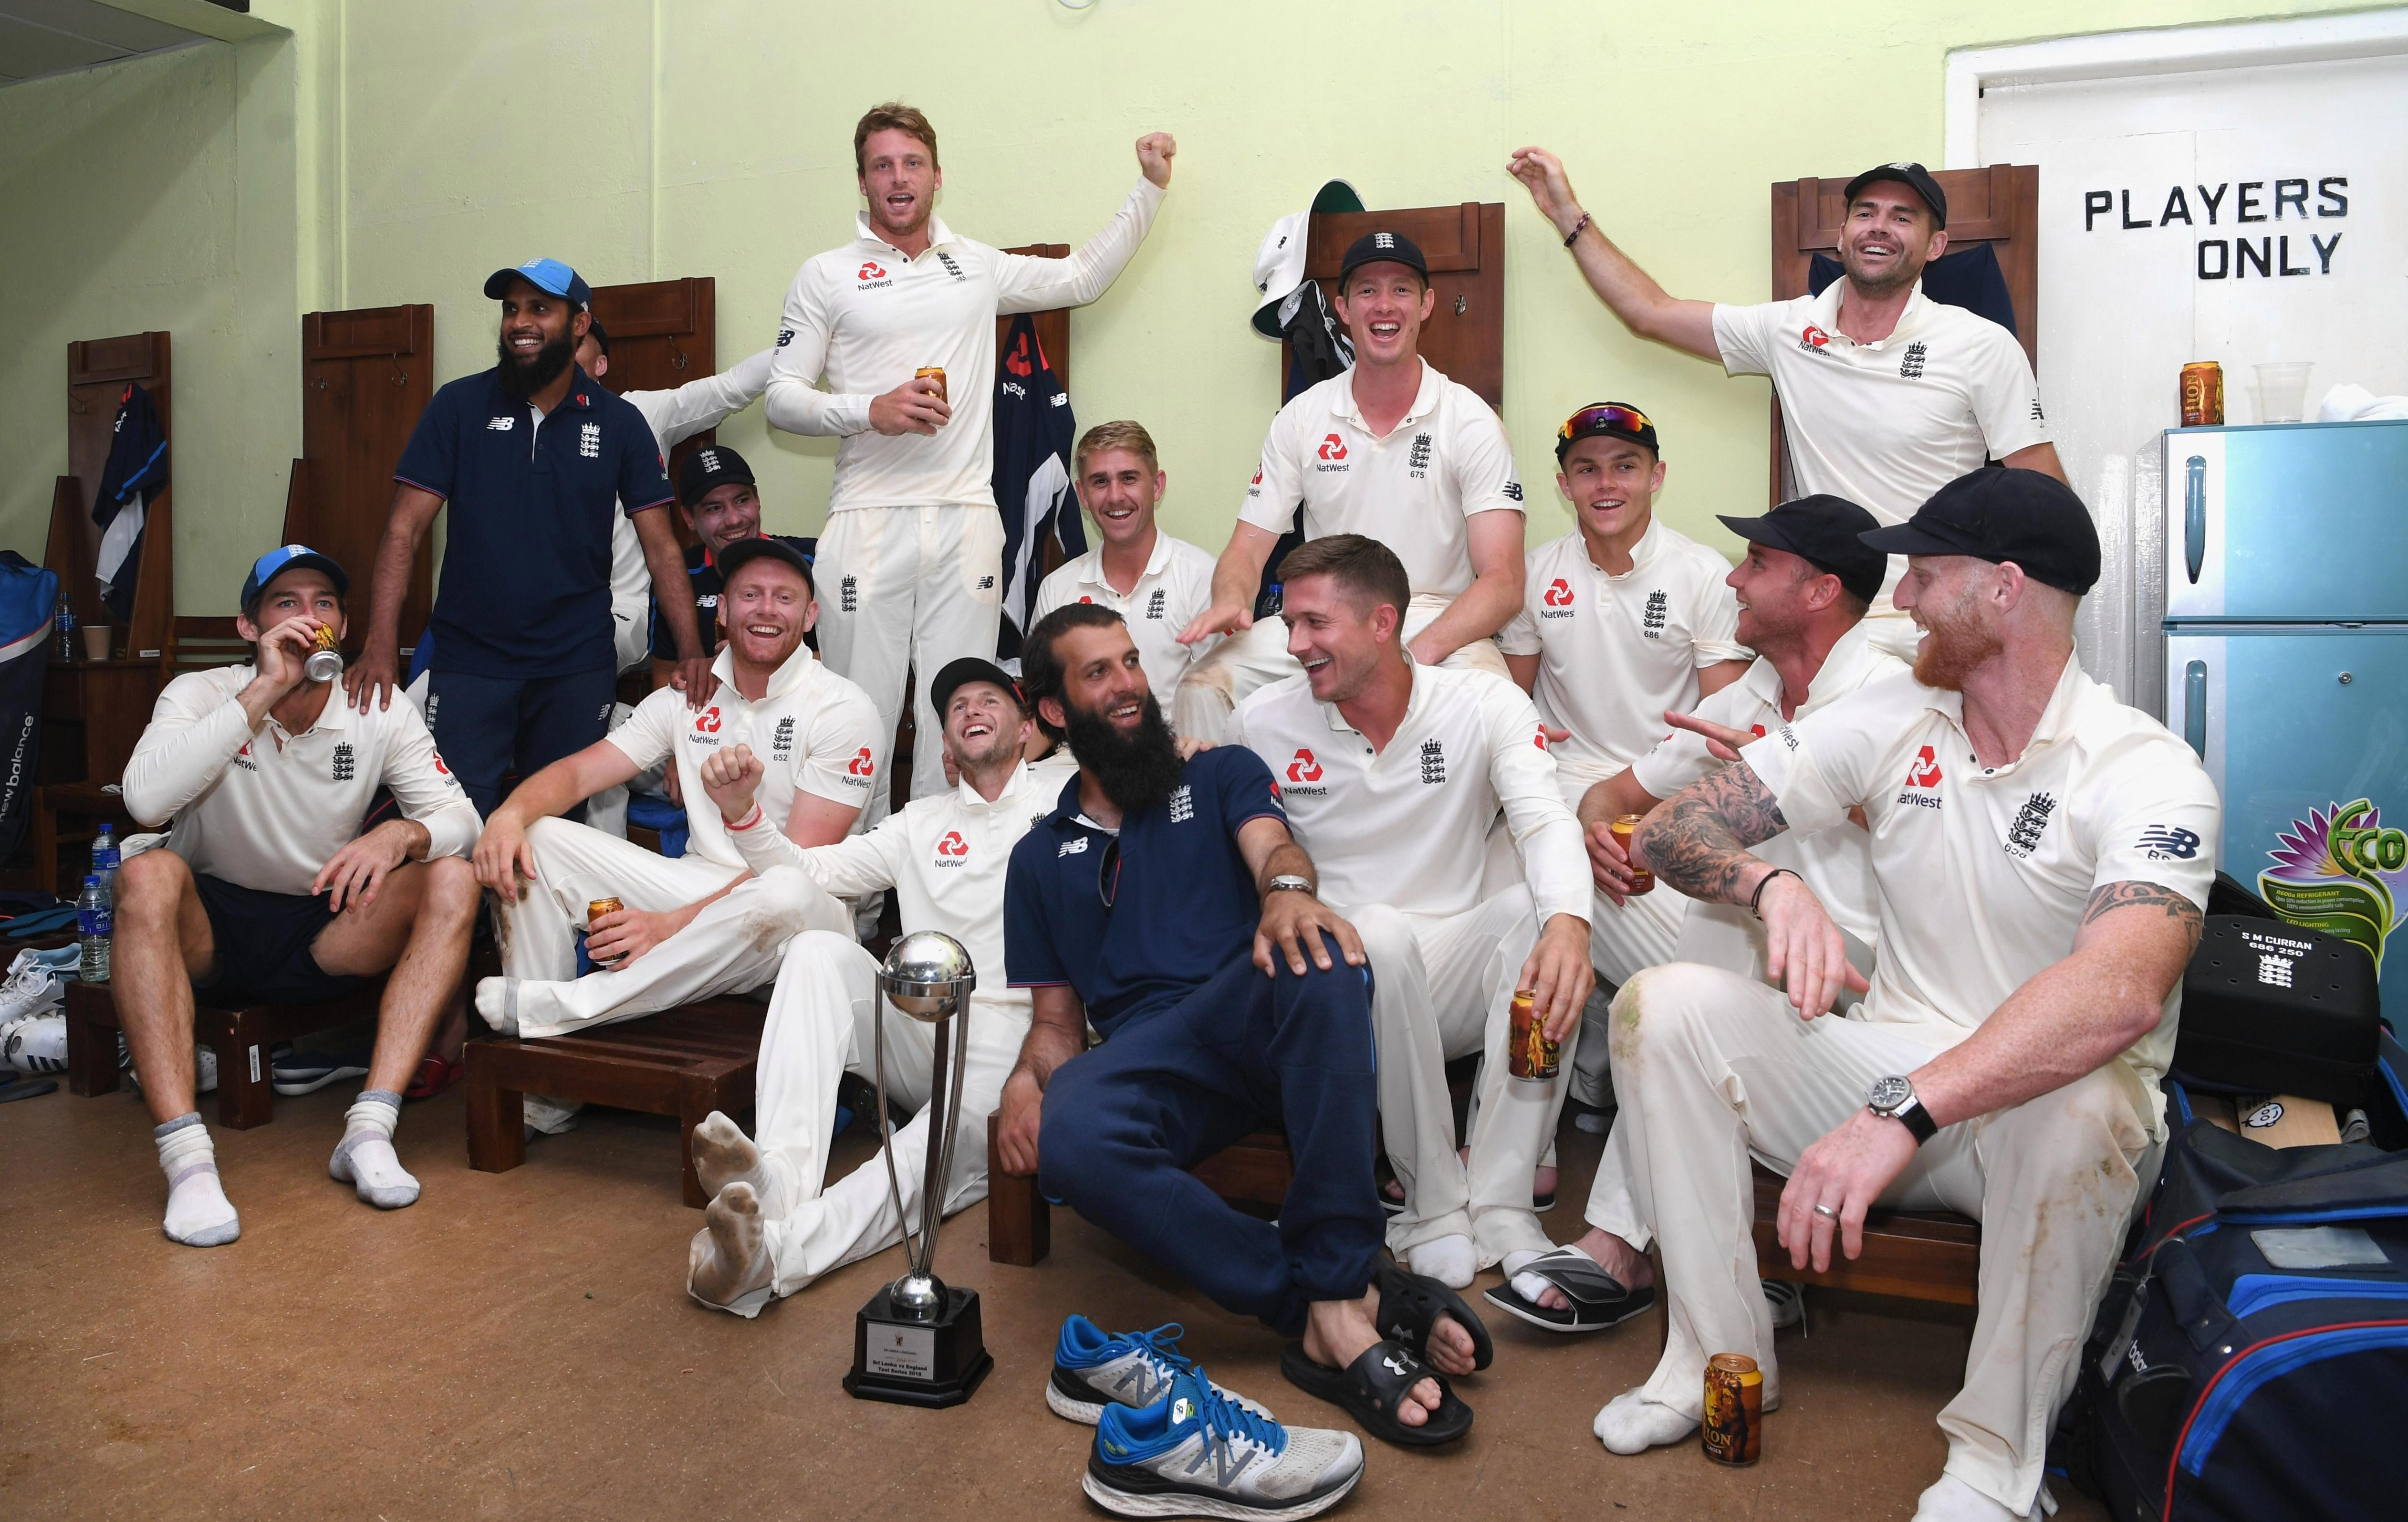 Englands players celebrate their historic win in Sri Lanka